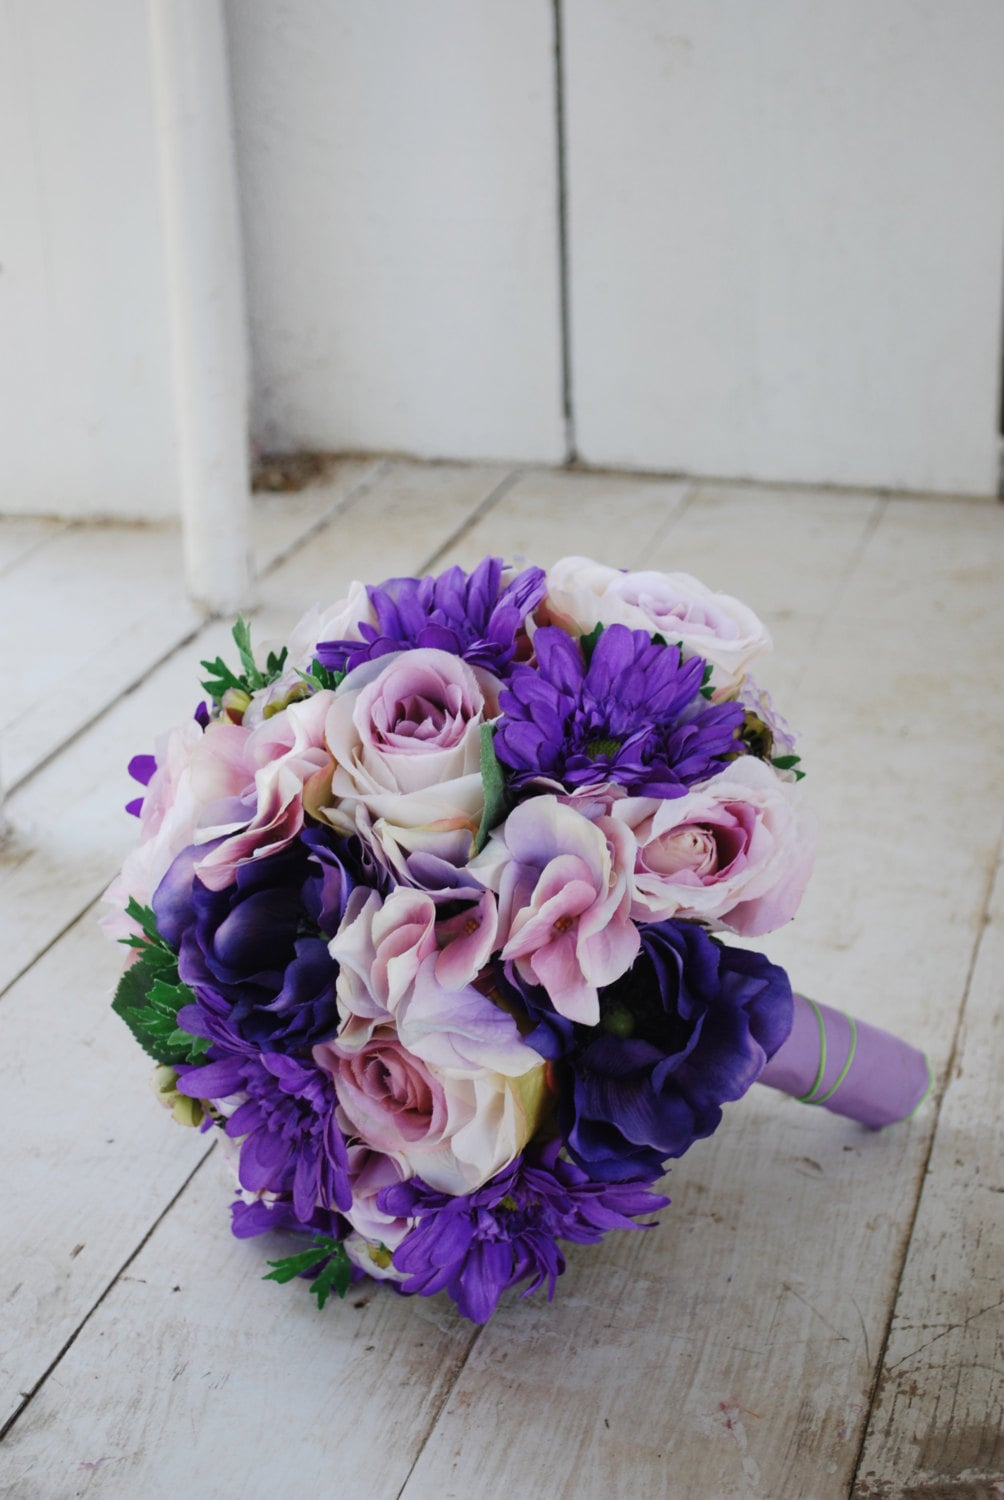 Wedding Bouquet Of Gerbera Daisies : Silk bridal bouquet purple roses gerbera daisies lavender